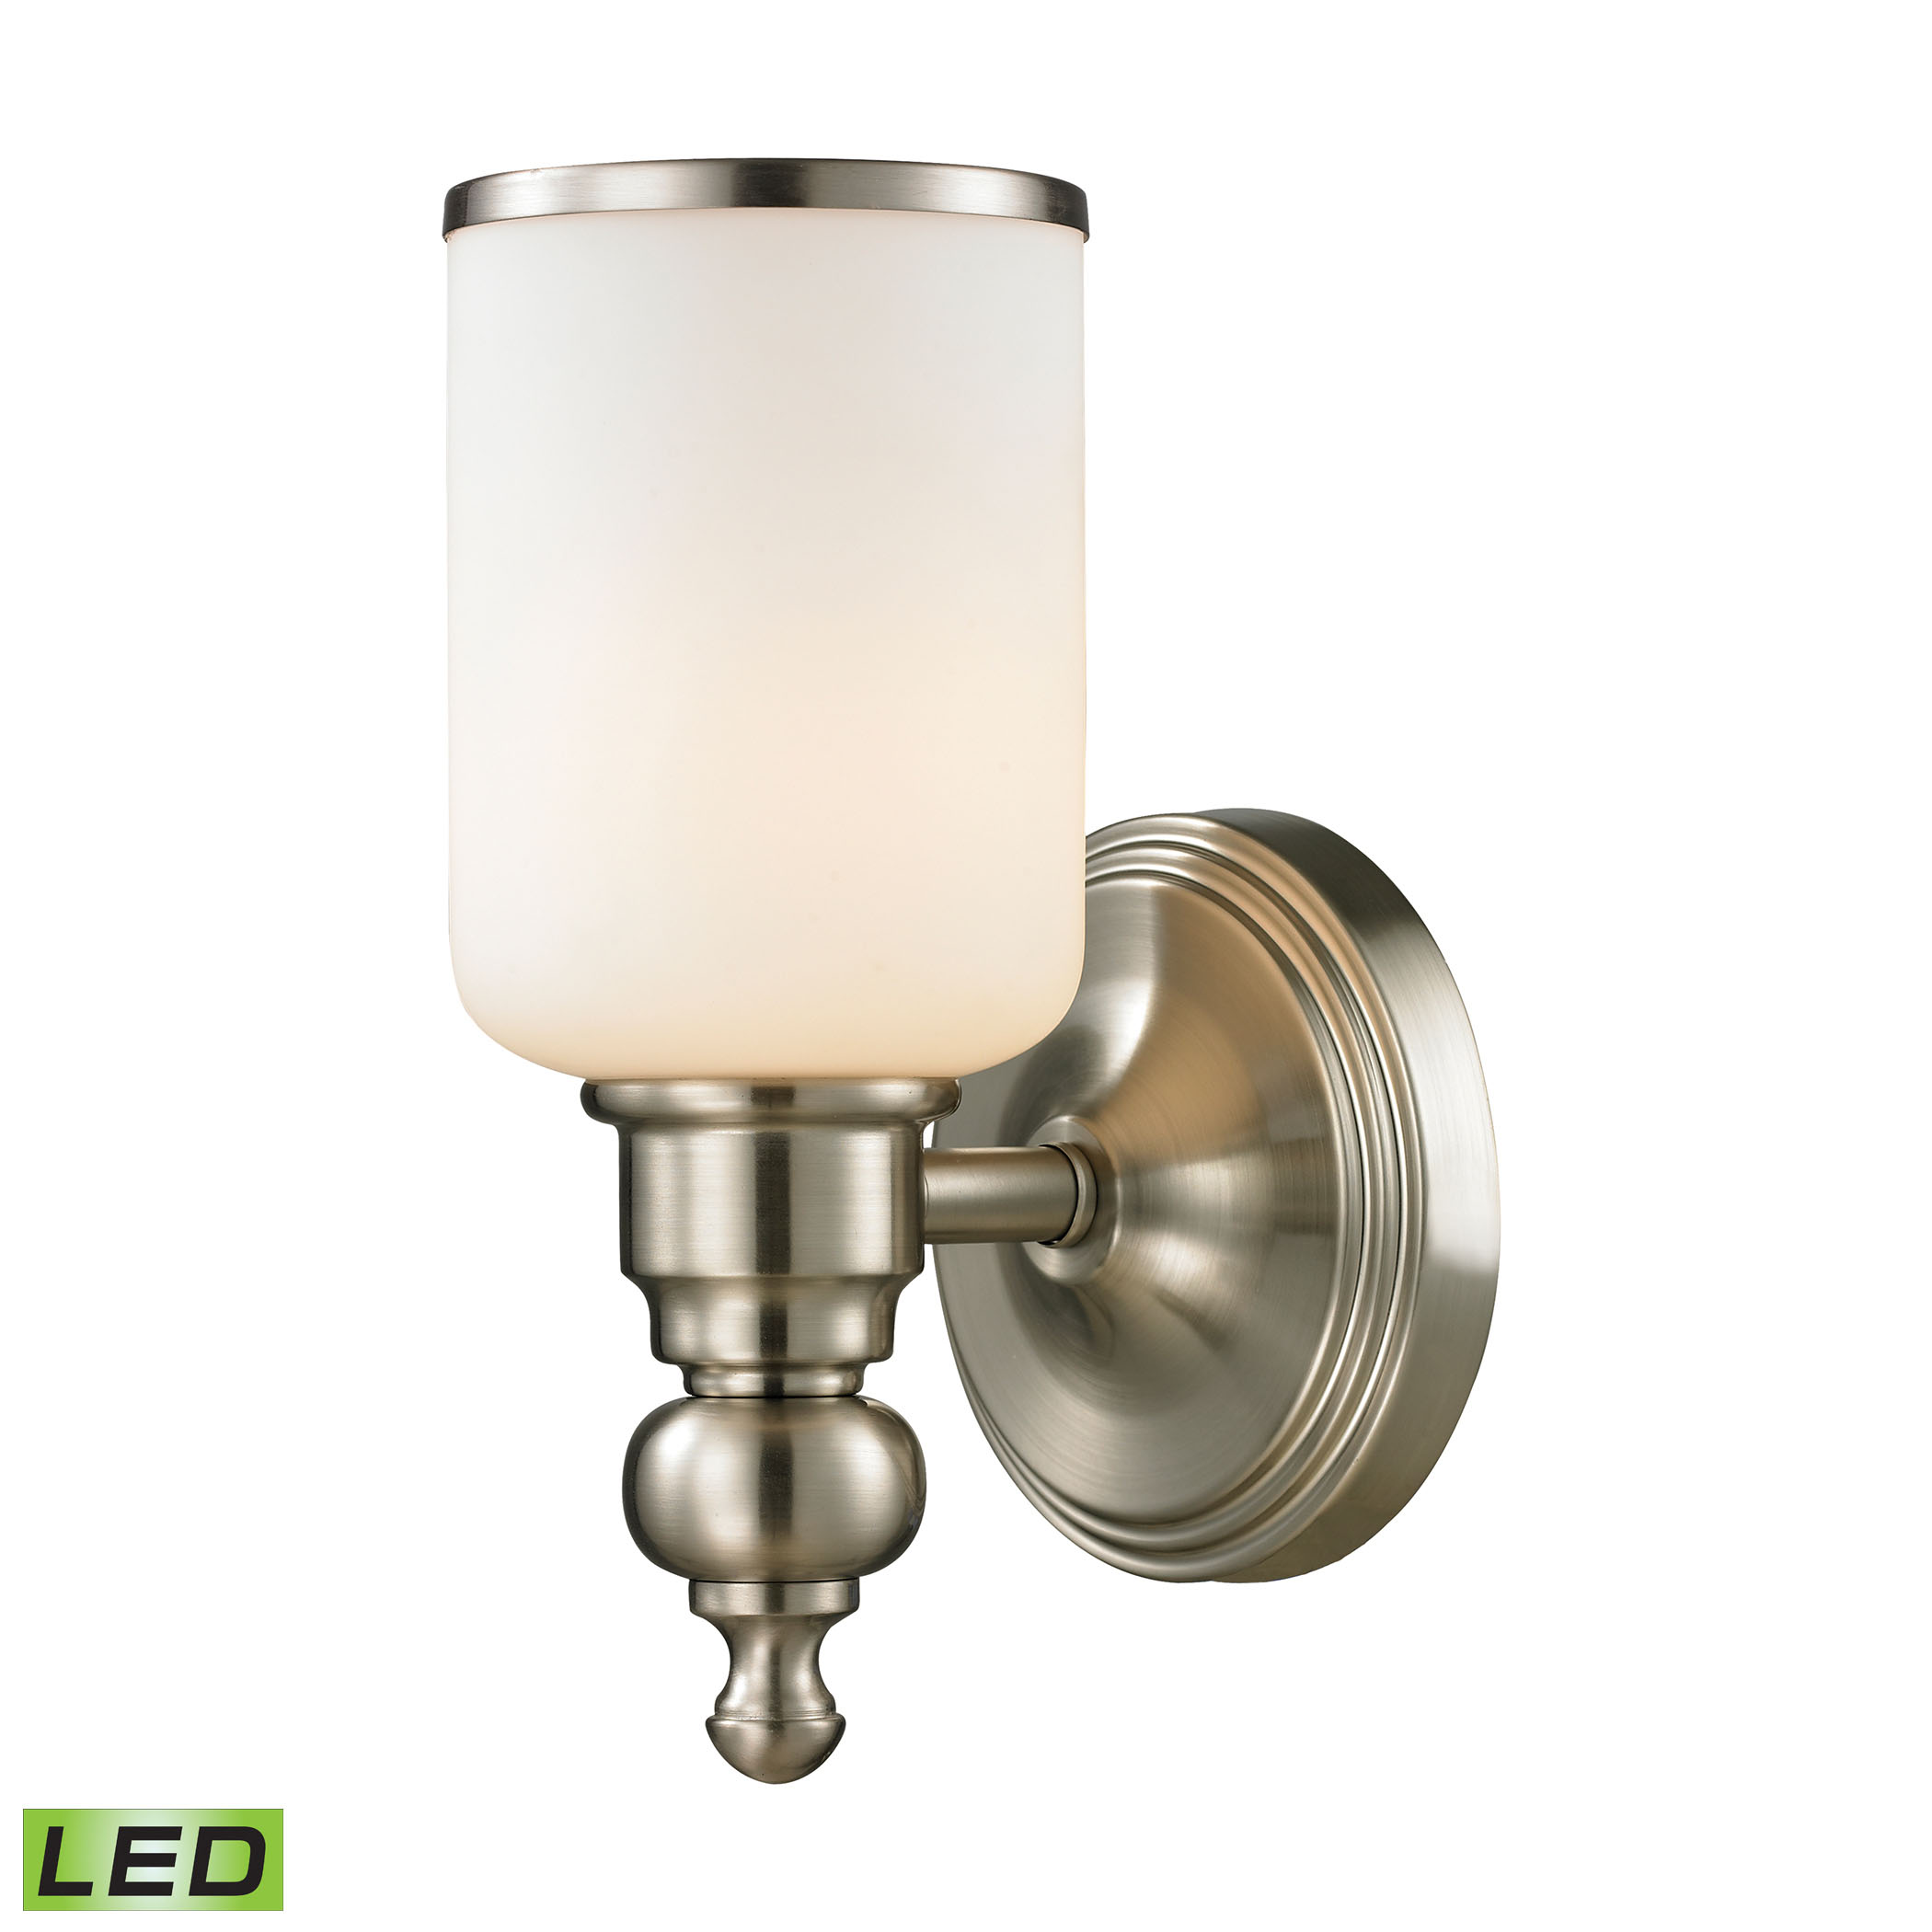 Bristol Collection 1 light bath in Brushed Nickel - LED Offering Up To 800 Lumens (60 Watt Equivalent)